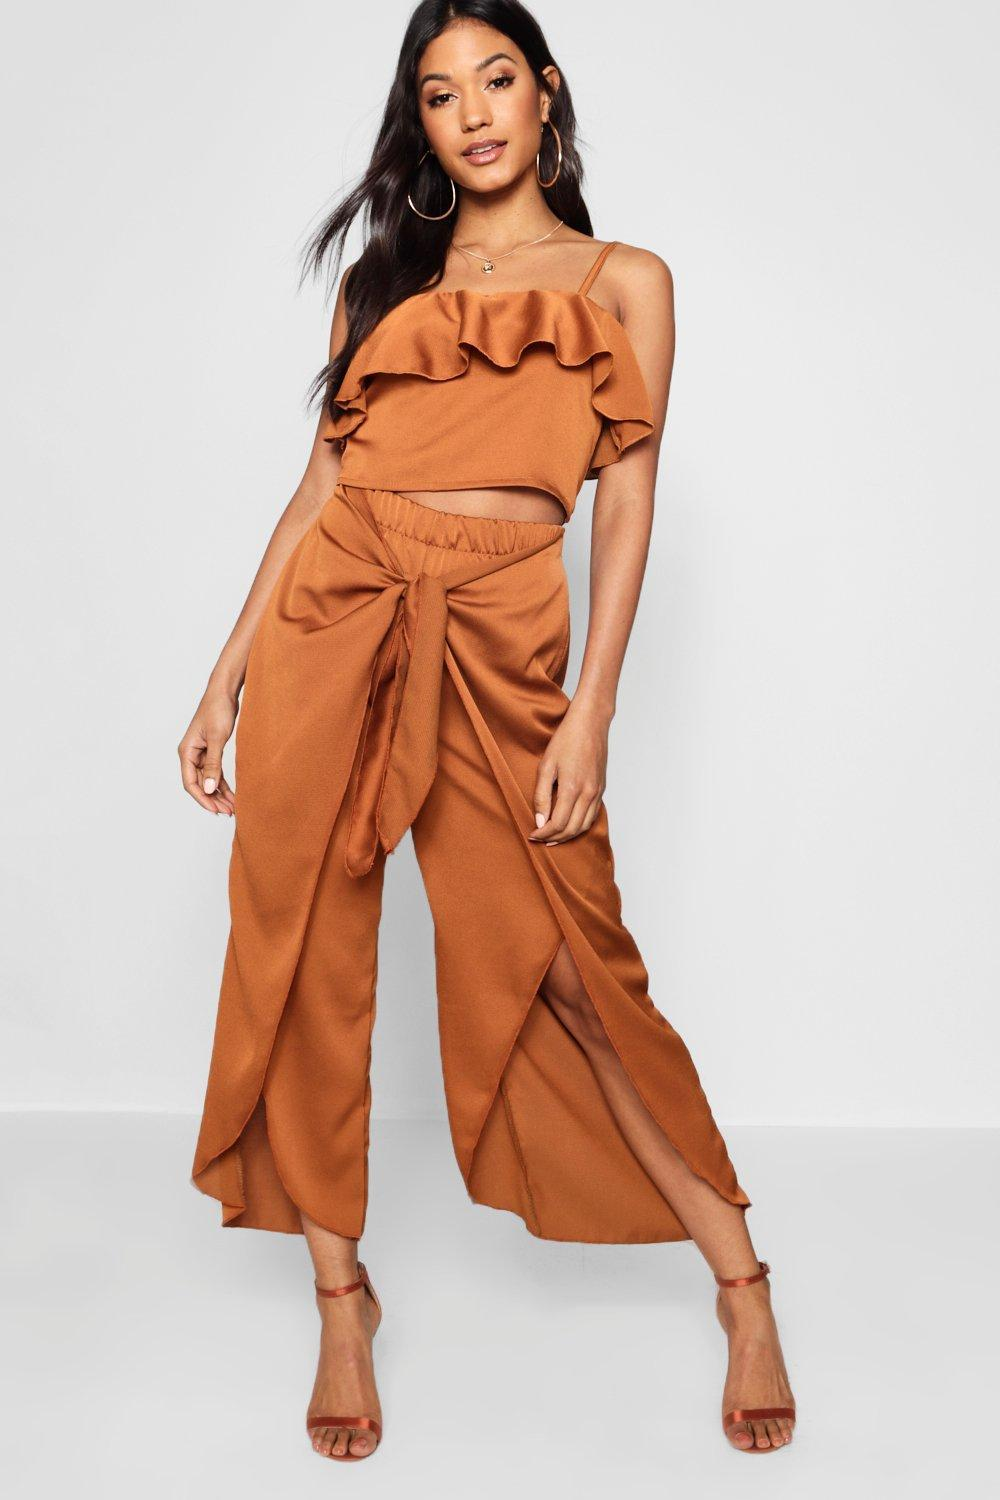 bb0a82338c Boohoo Satin Ruffle Top Trouser Co-ord Set - Lyst